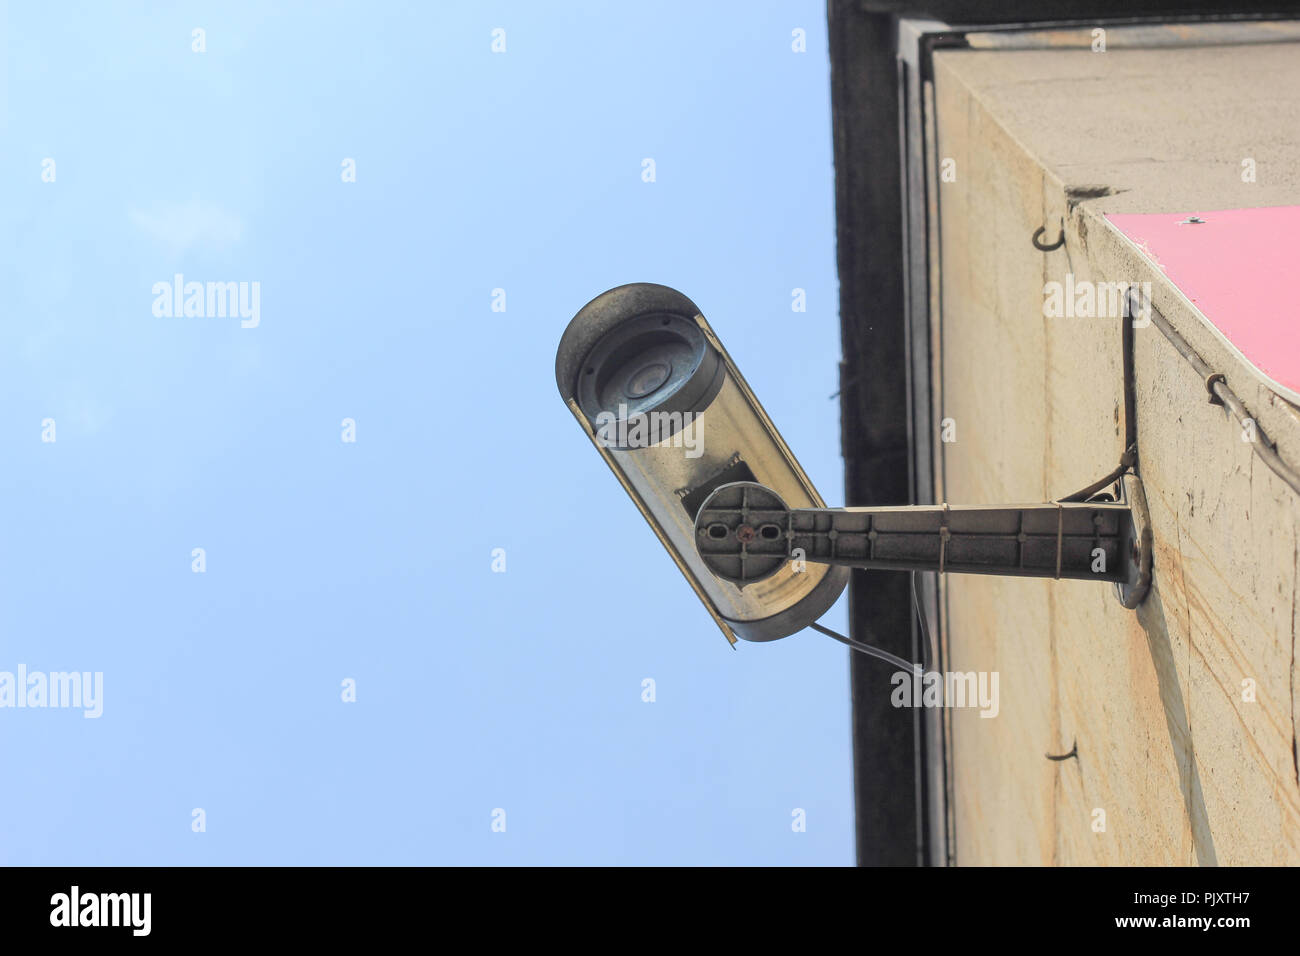 Video Surveillance Camera On The Wall - Stock Image